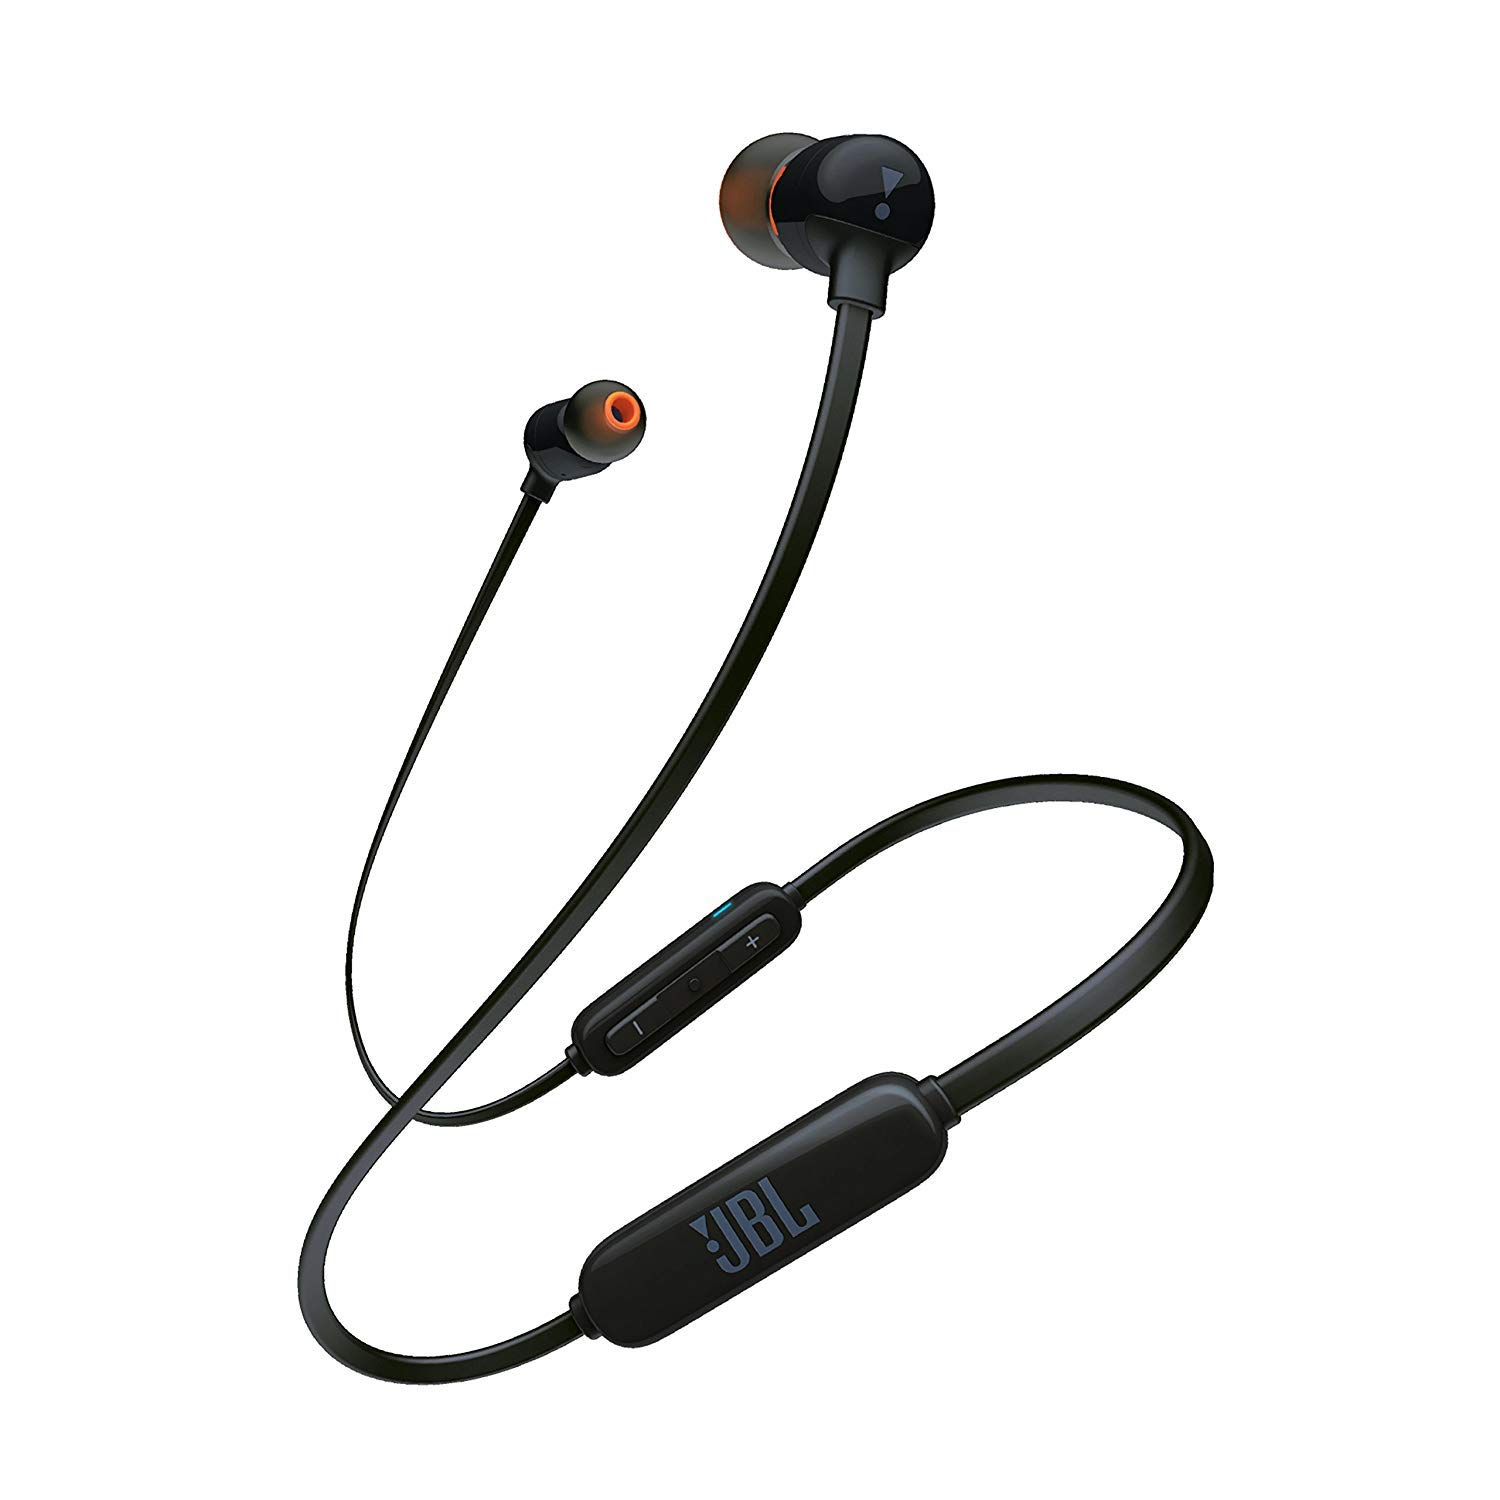 3ea29c76467 Amazon.com: JBL Lifestyle Tune 110BT Wireless in-Ear Headphones, Black:  Electronics